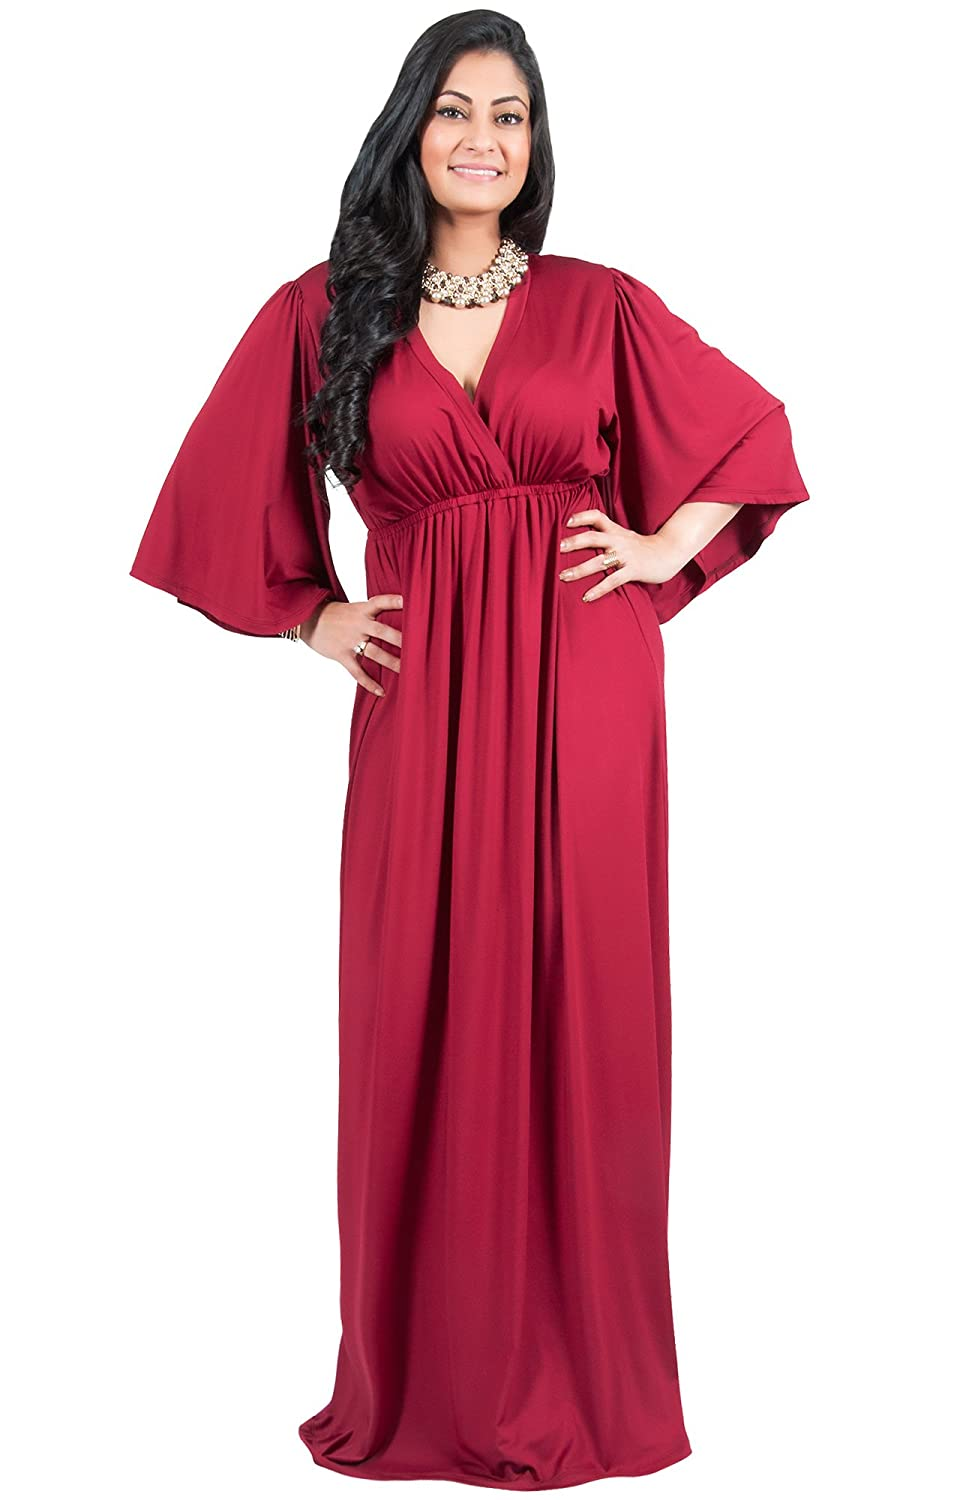 d134d4dff47 GARMENT CARE - Hand or machine washable. Can be dry-cleaned if desired.  PLUS SIZE - This great plus size maxi dress is perfect for women with ...